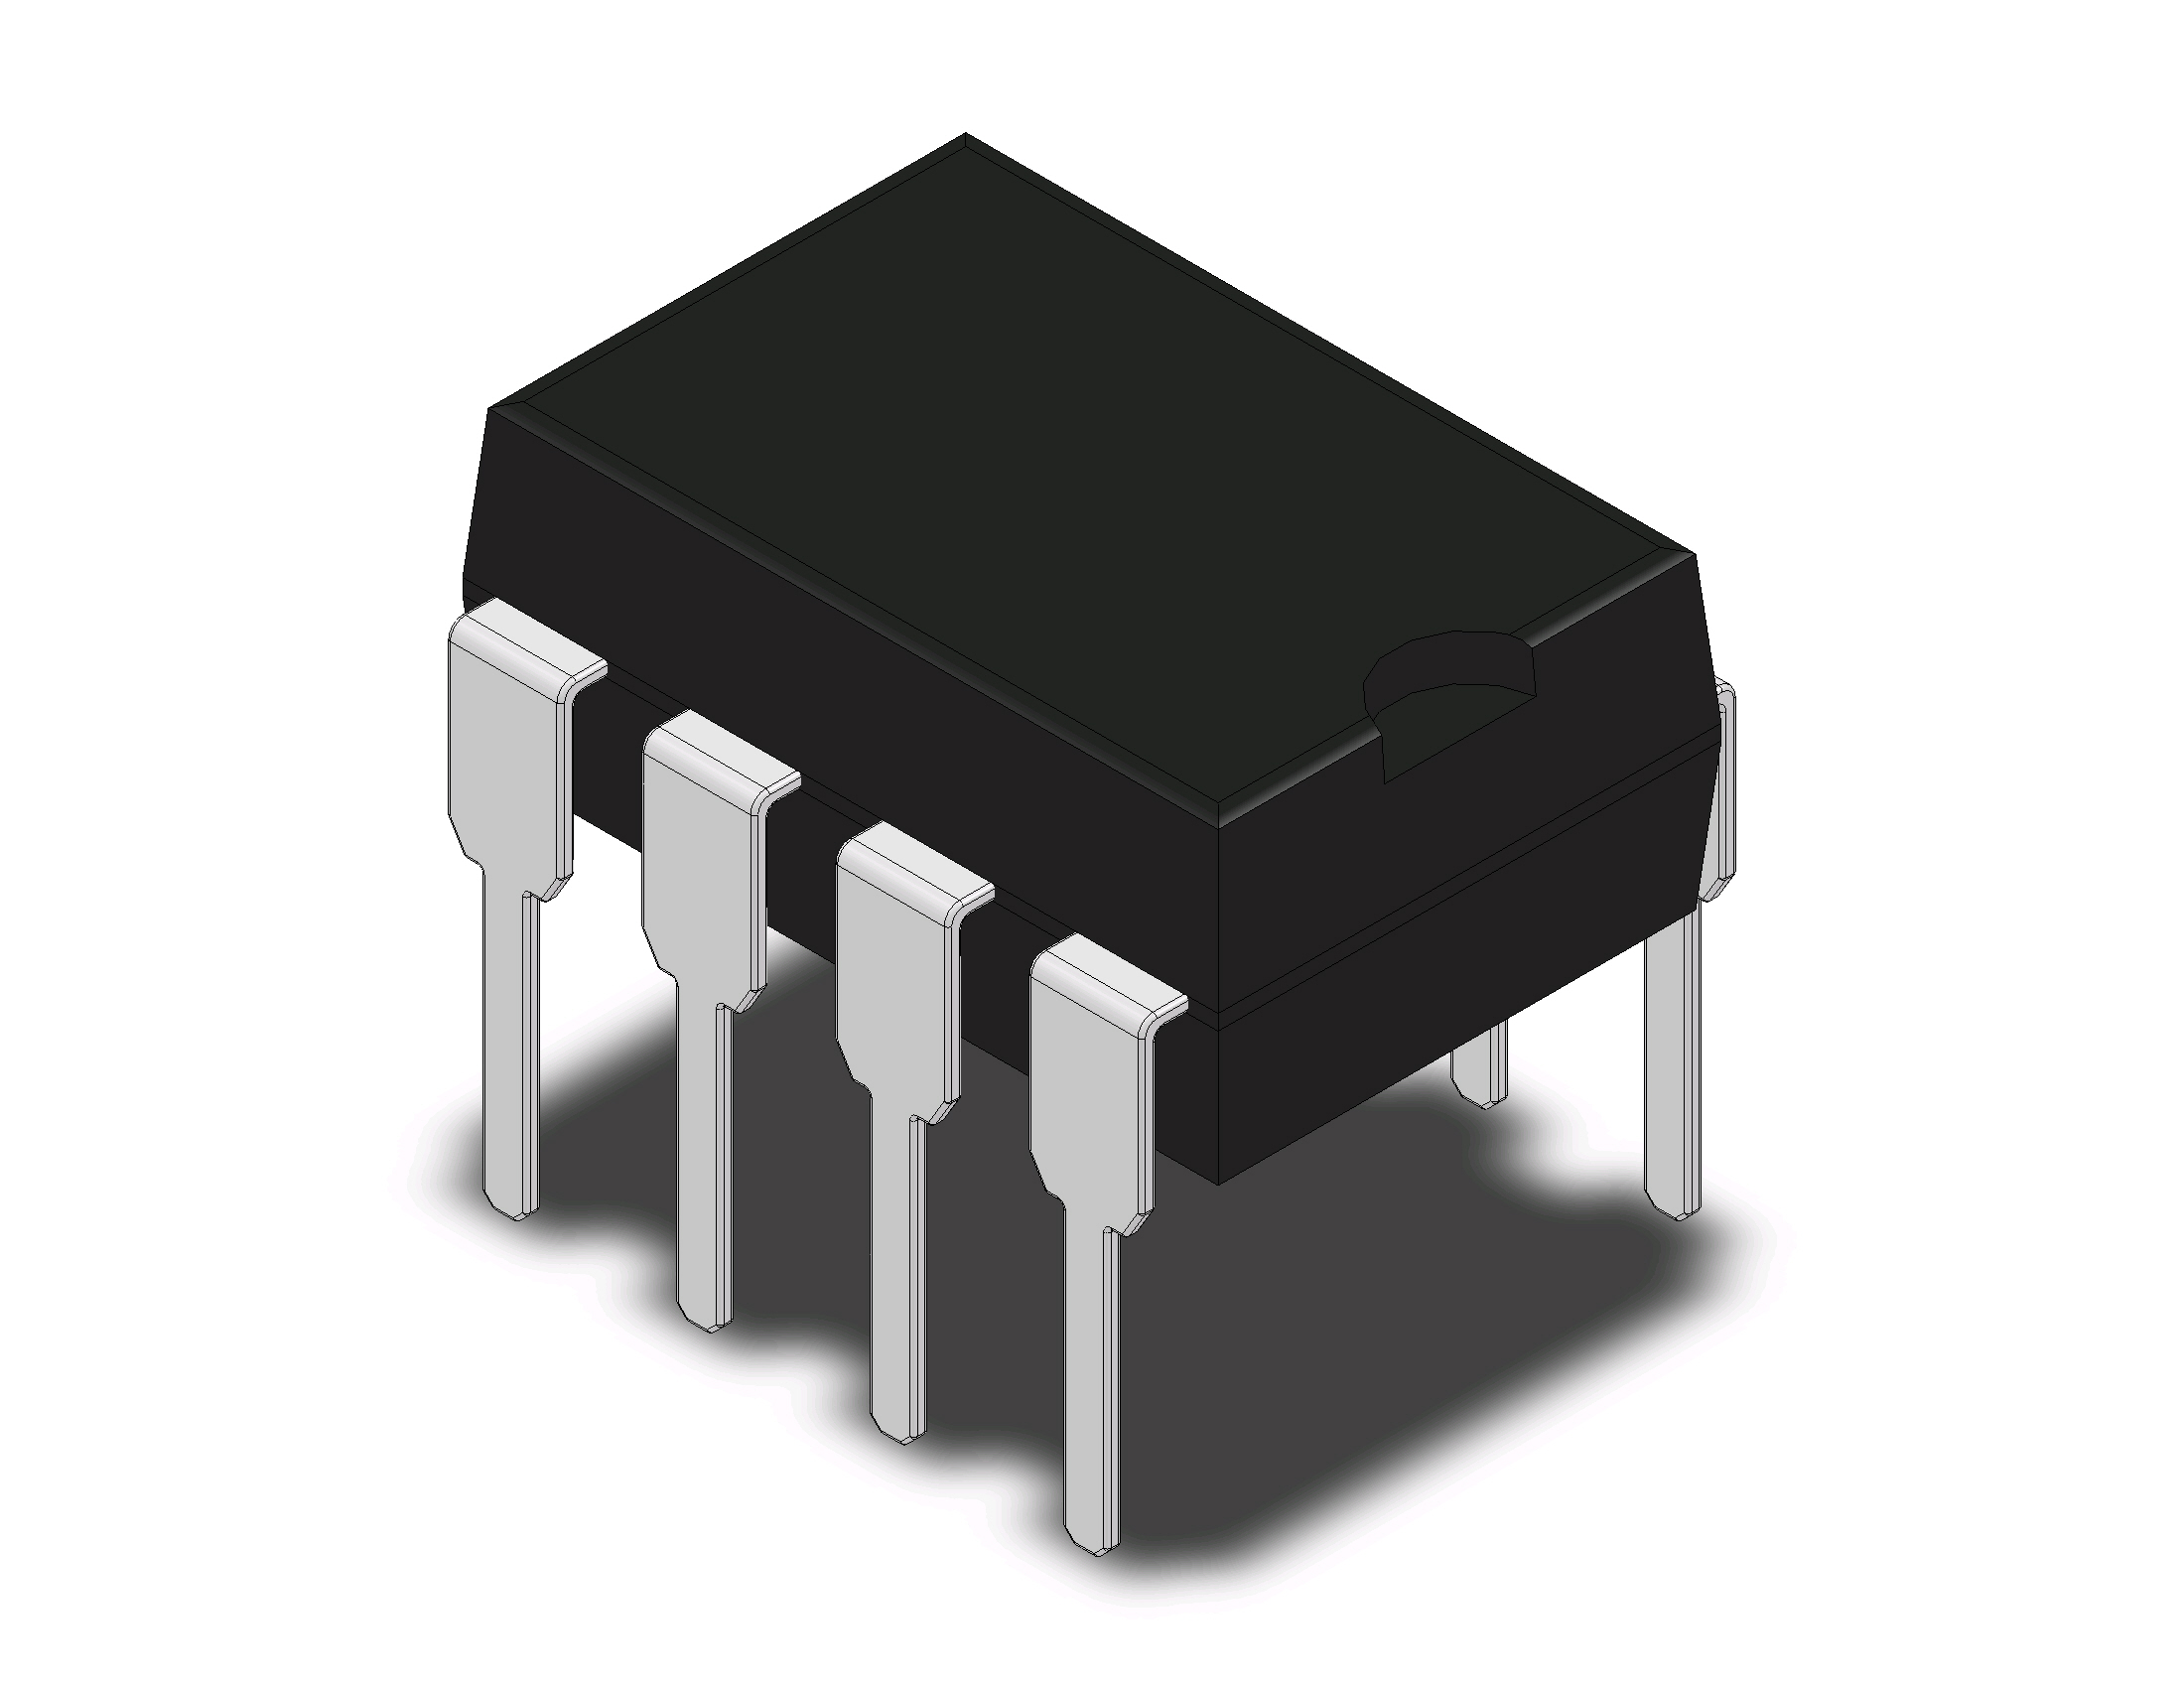 Buy Lm358p Dip 8 Dual Op Amp Low Power At The Right Price Electrokit Operational Amplifier Amplifiers Electronics Home Integrated Circuits